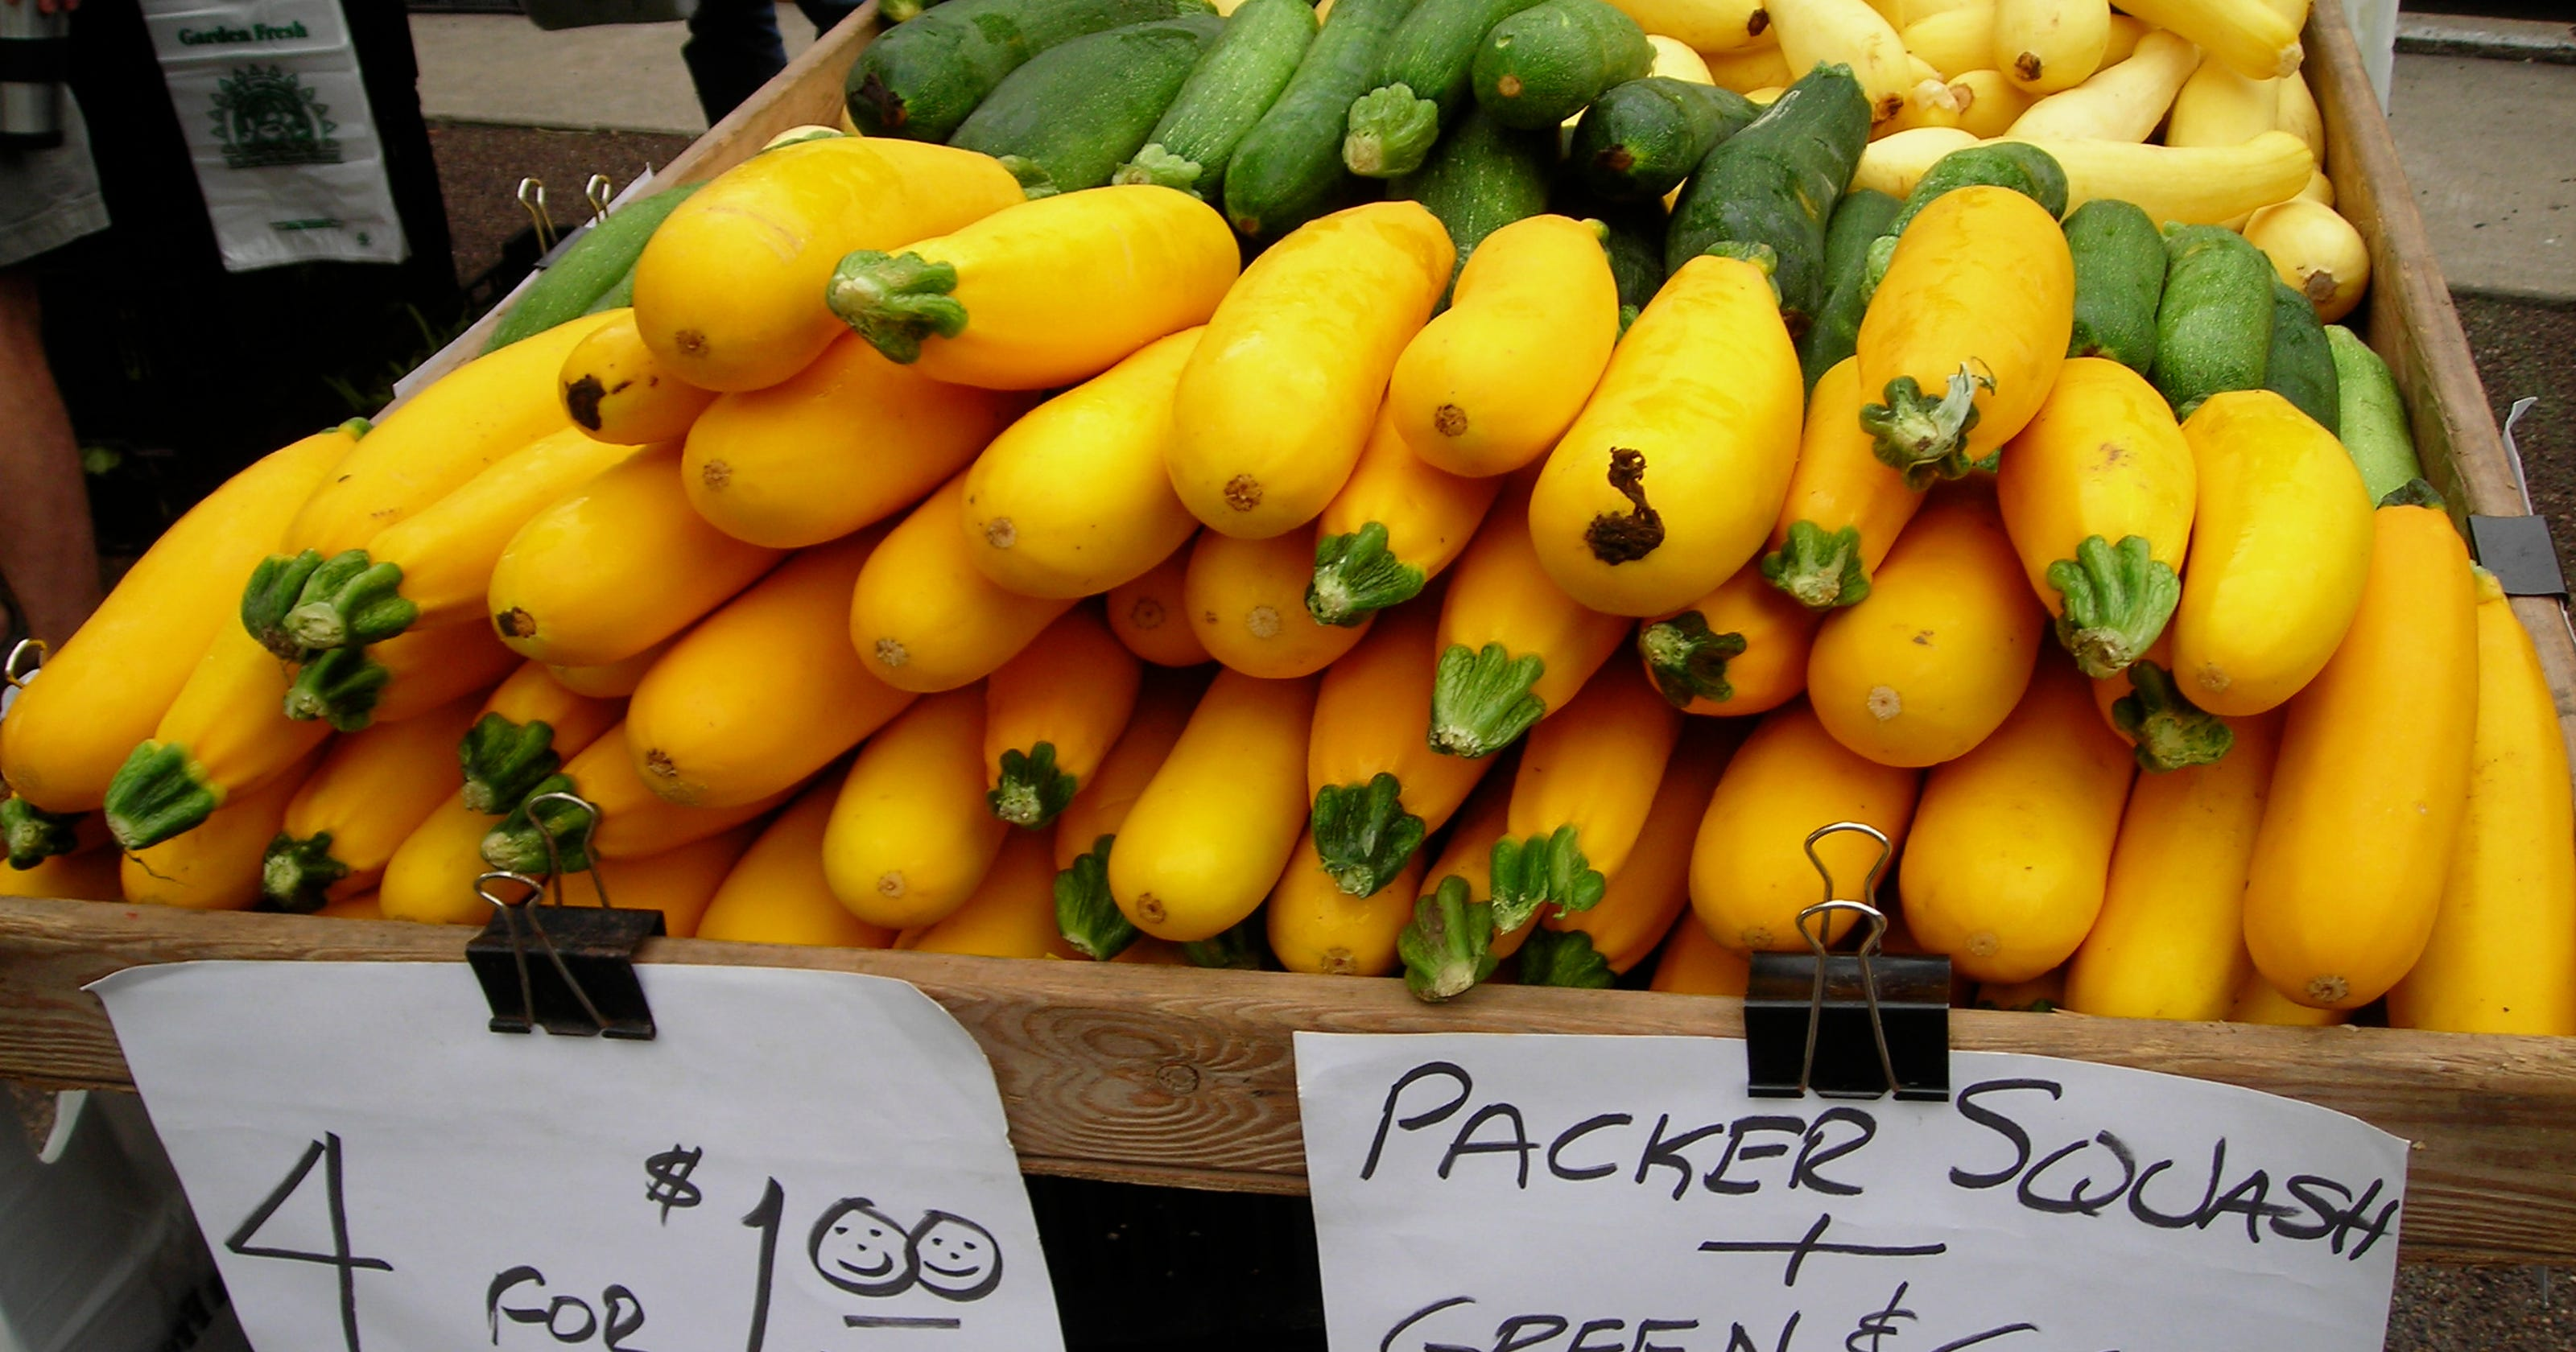 Half Of Produce At Farm Stands Could Come From Grocery Stores